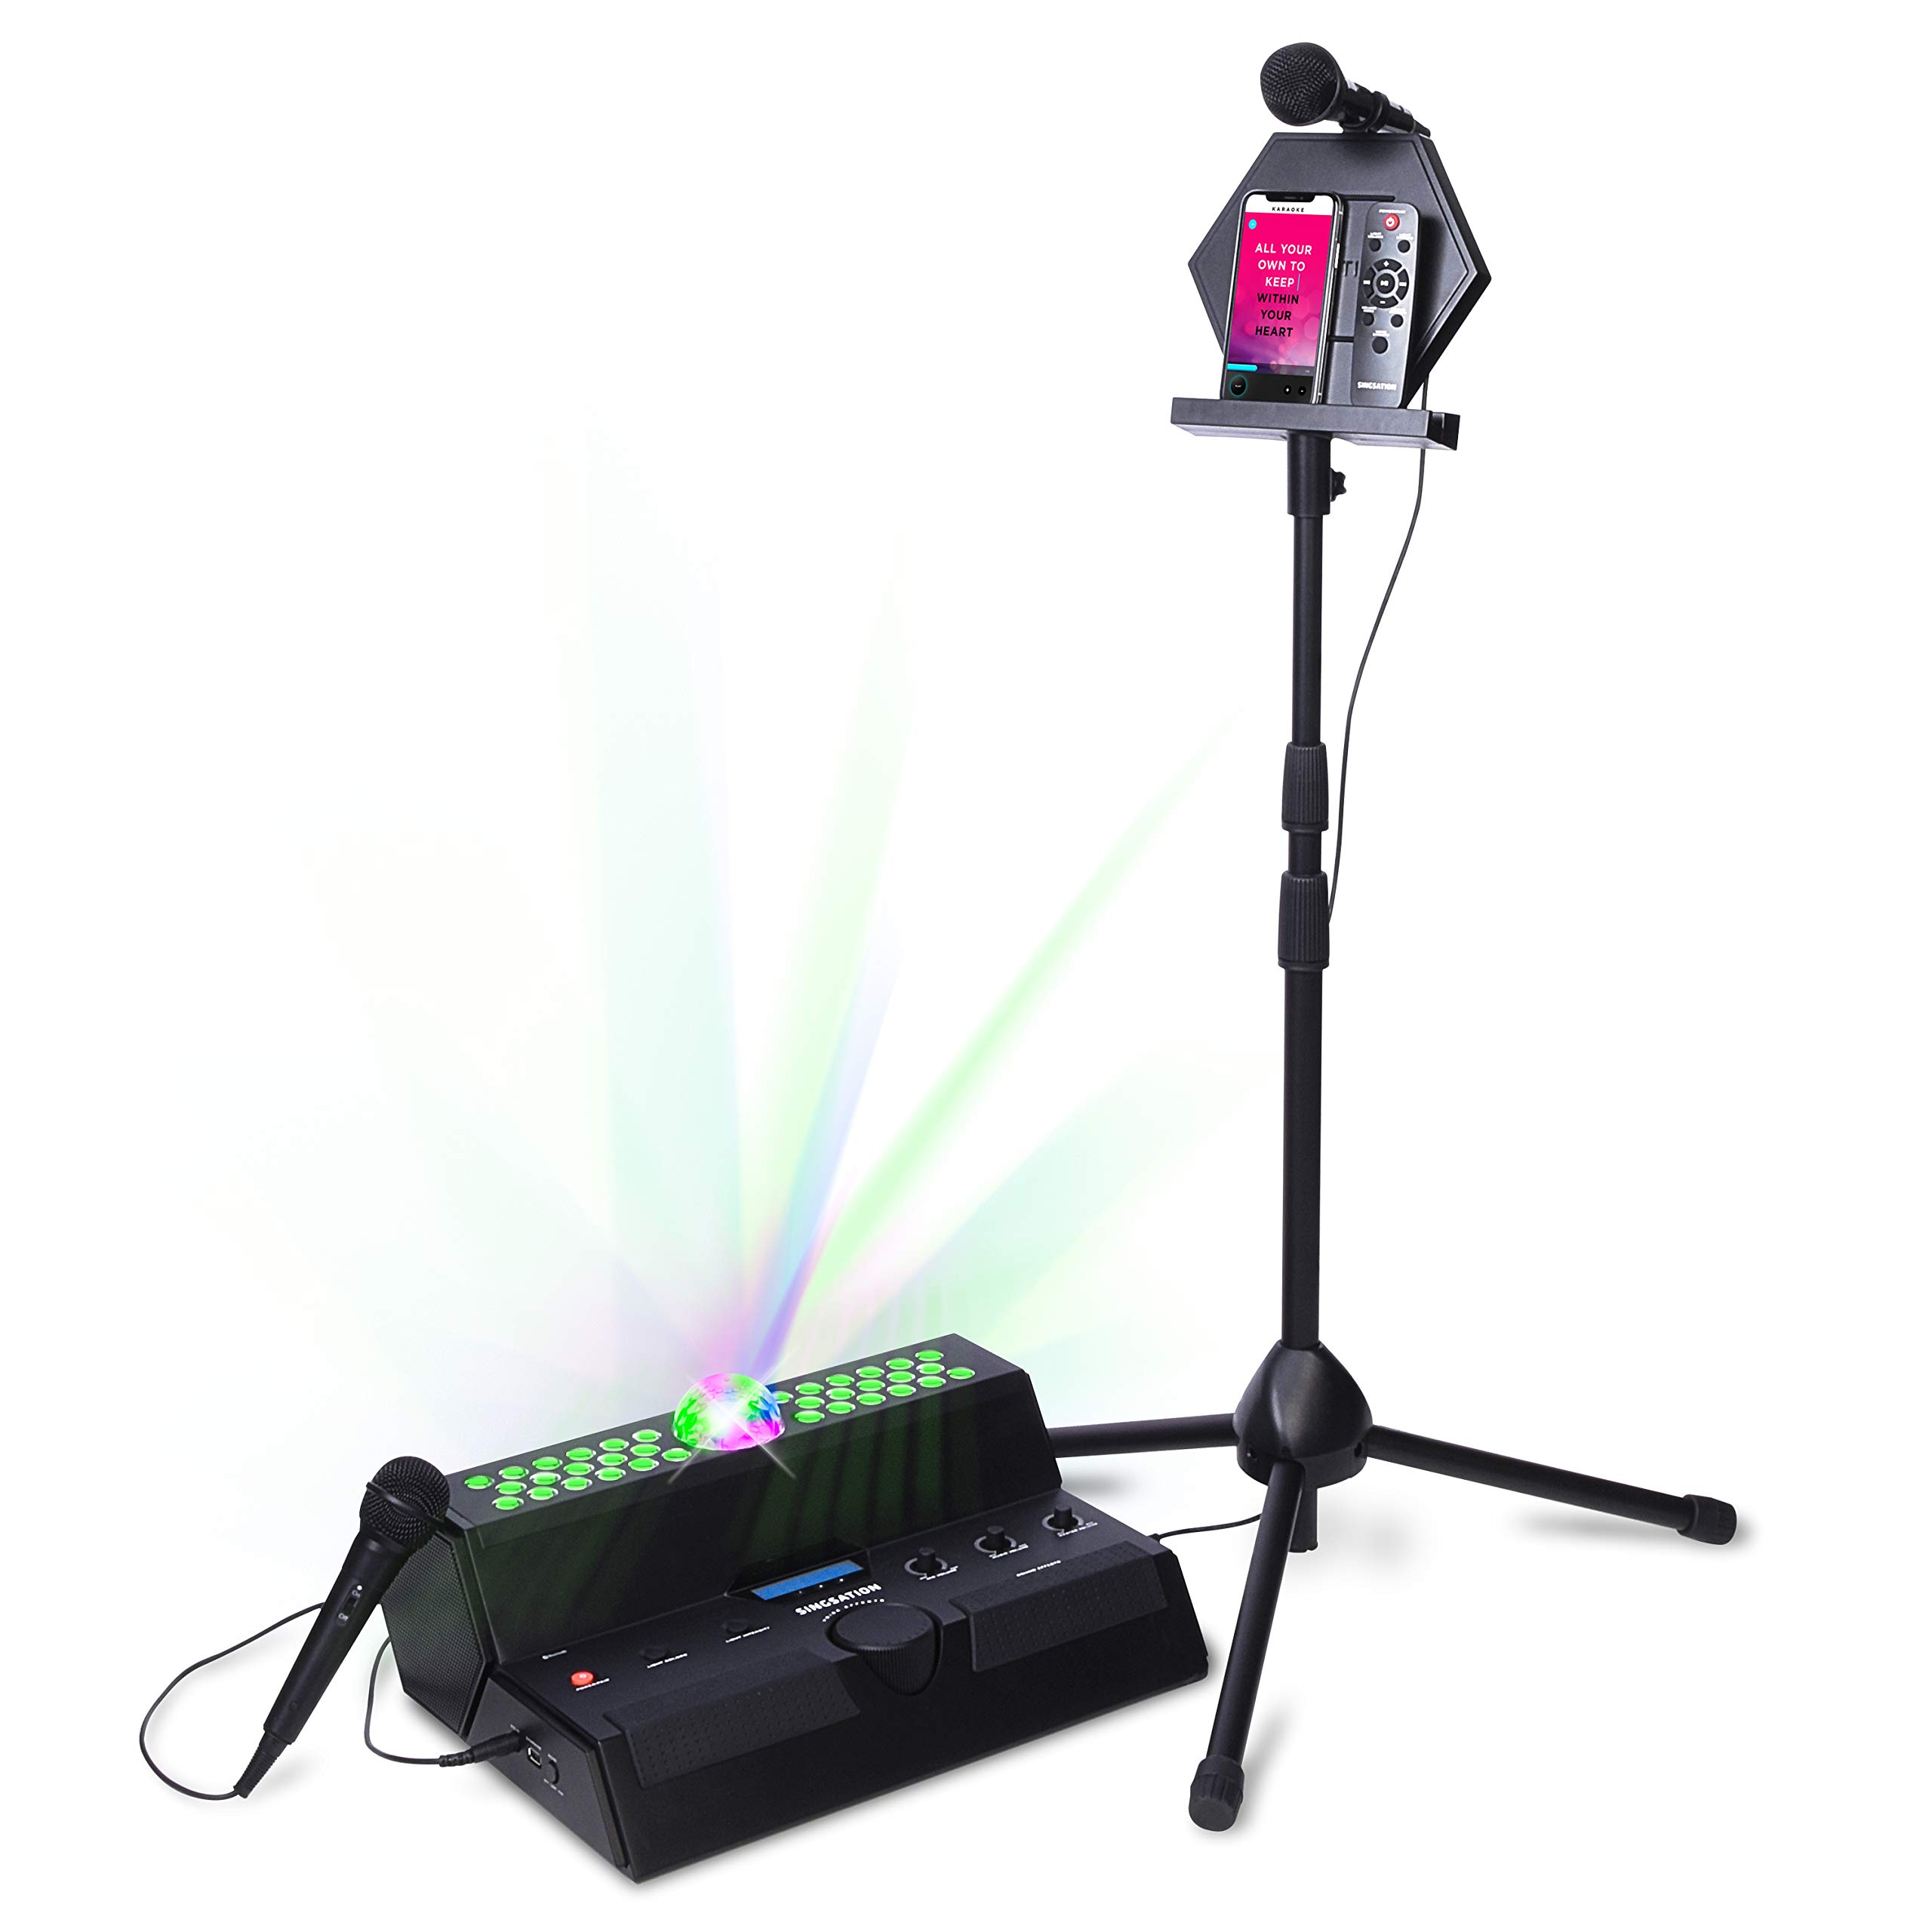 Singsation Karaoke Machine - Mainstage All-In-One Premium Karaoke Party System w/Vocal, Sound and Light Effects, Two Microphones and Sound System by 808 (Image #1)